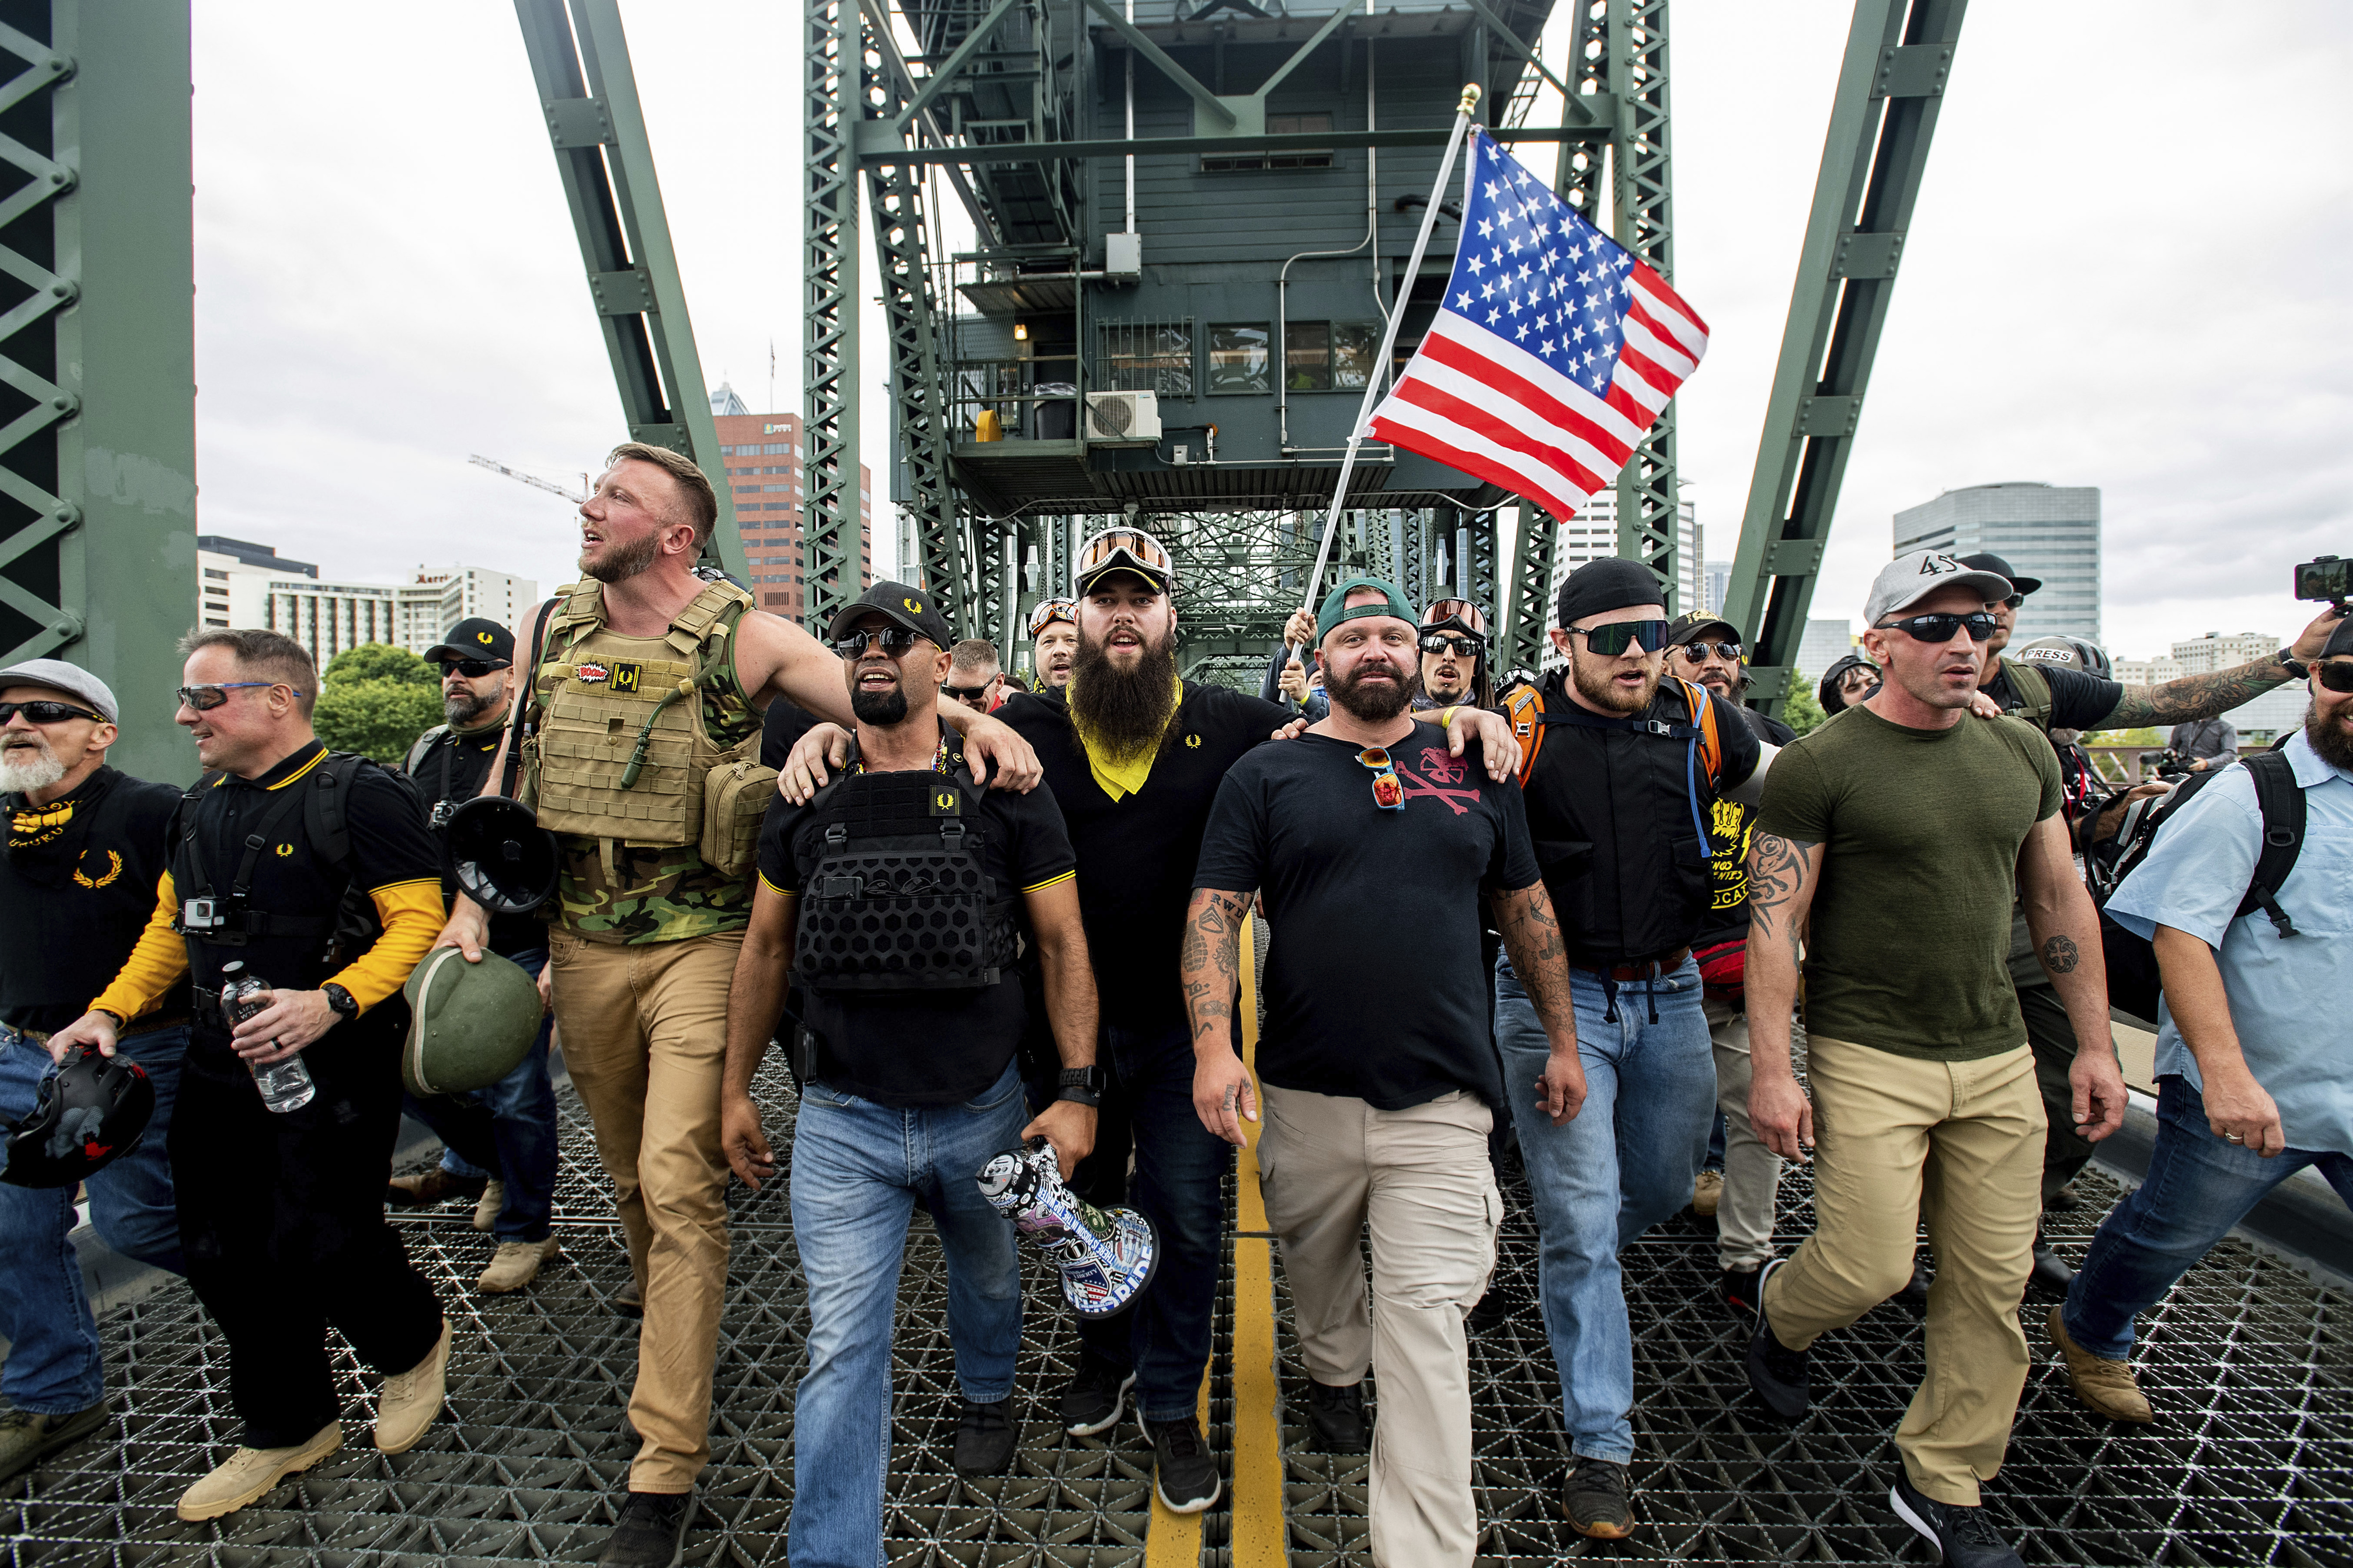 Members of the Proud Boys and other right-wing demonstrators march across the Hawthorne Bridge during a rally in Portland.